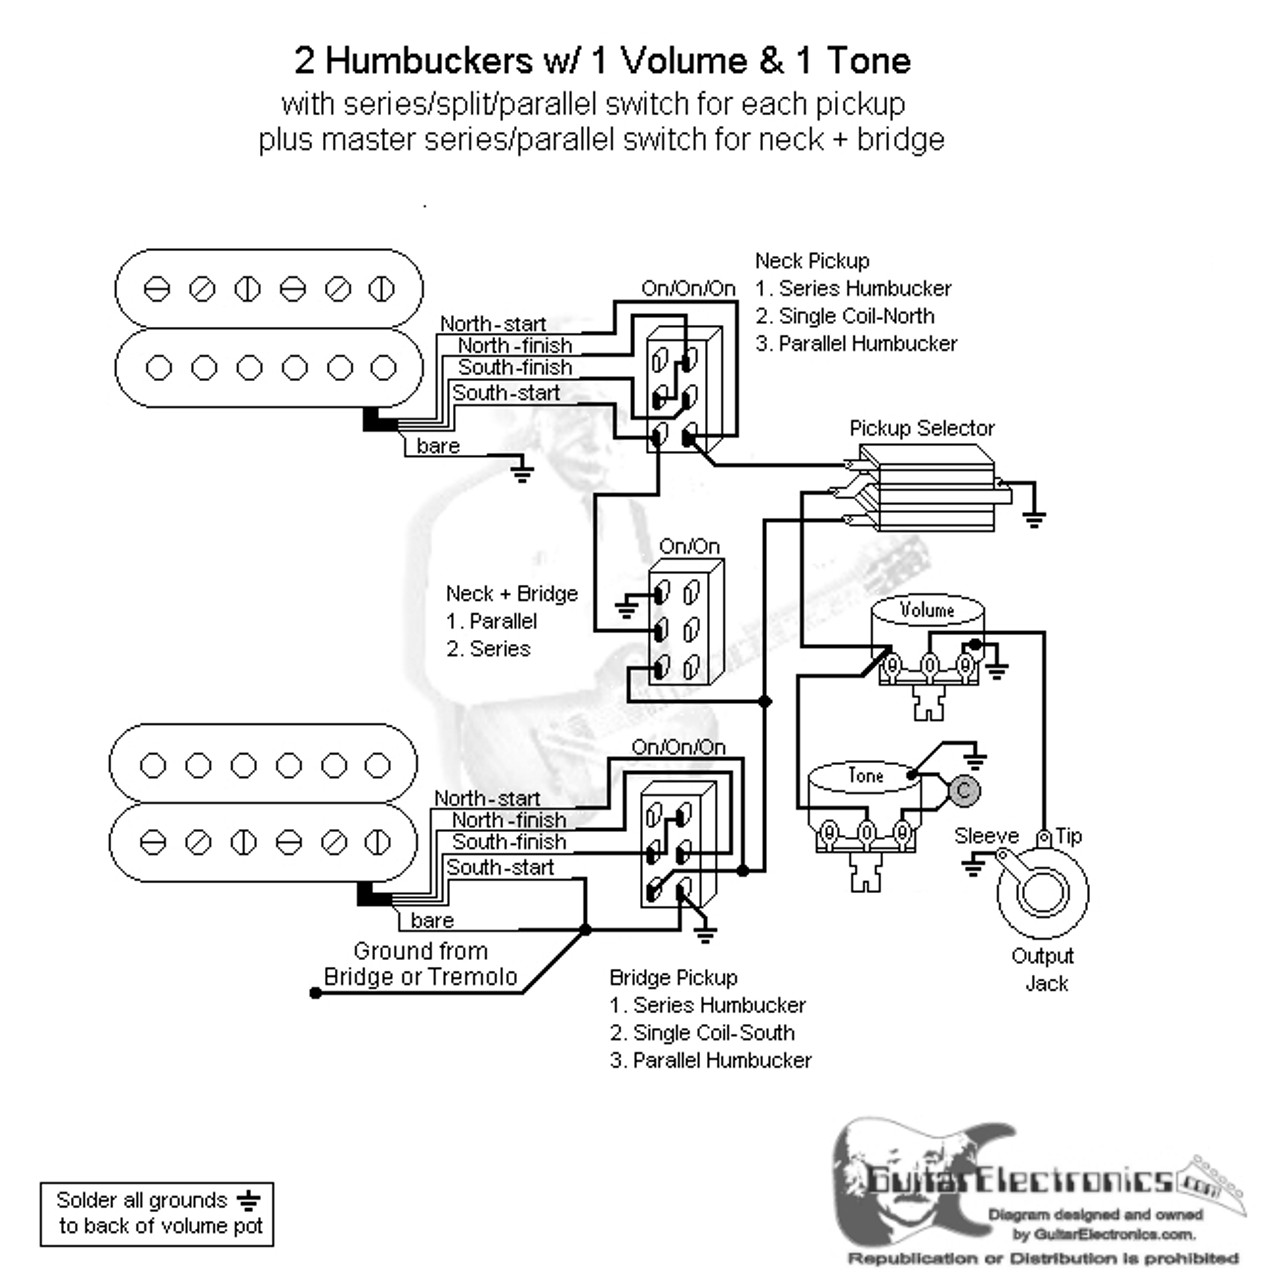 3 Way Toggle Switch Wiring Diagram: 2 HBs/3-Way Toggle/1 Vol/1 Tone/Series-Split-Parallel 6 Master rh:guitarelectronics.com,Design